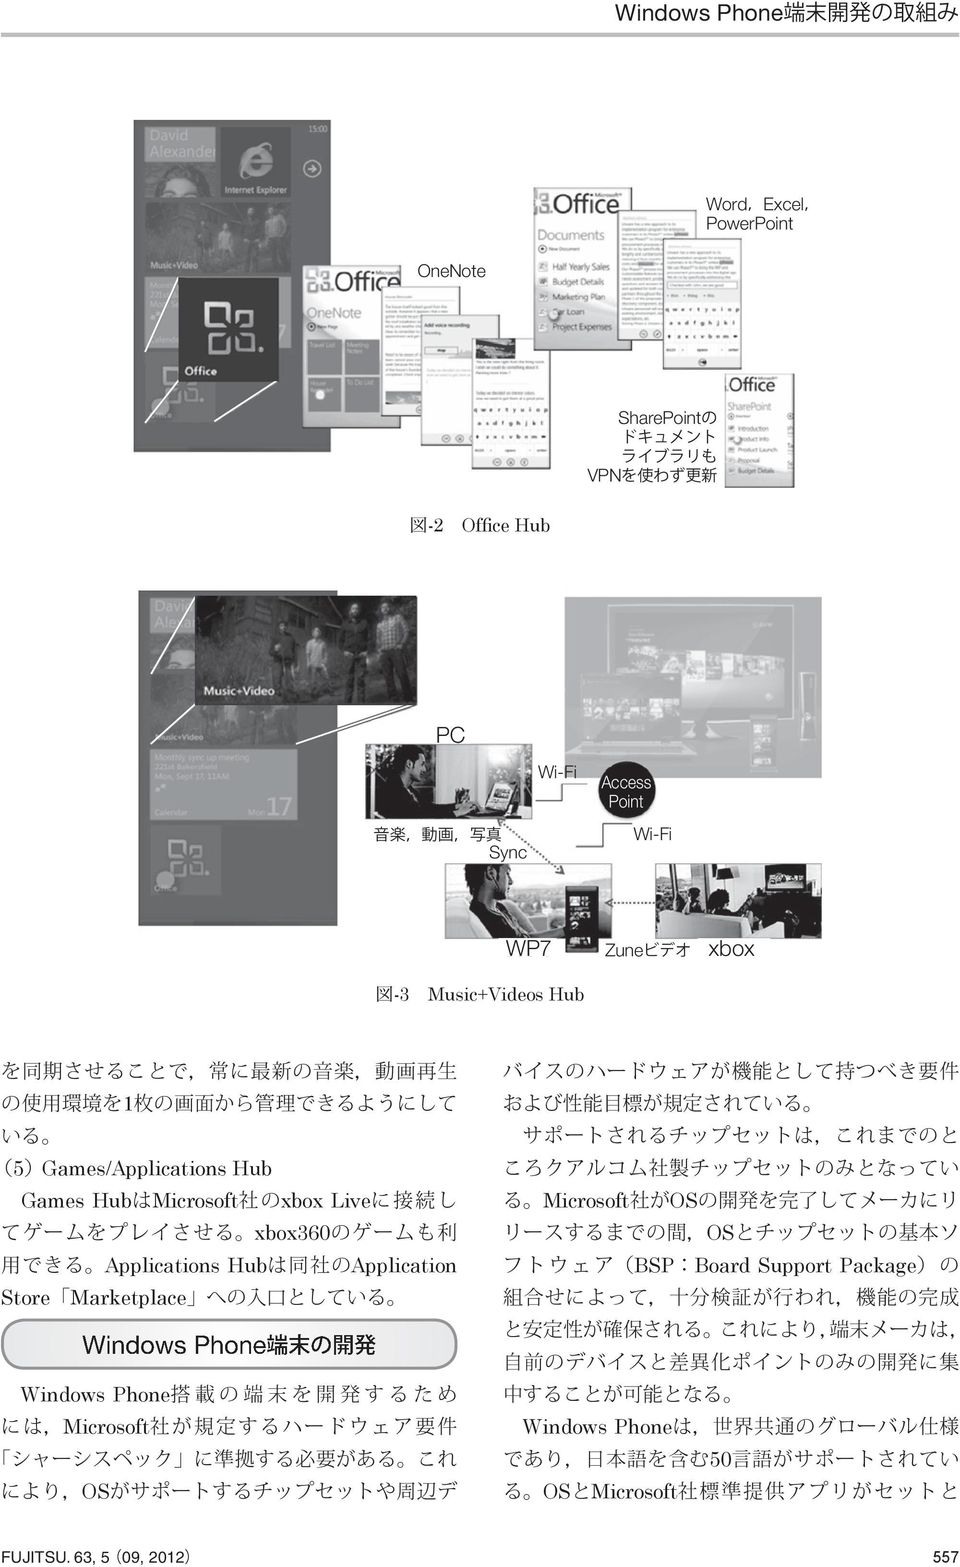 Live xbox360 Applications HubApplication Store Marketplace Windows Phone 端末の開発 Windows Phone